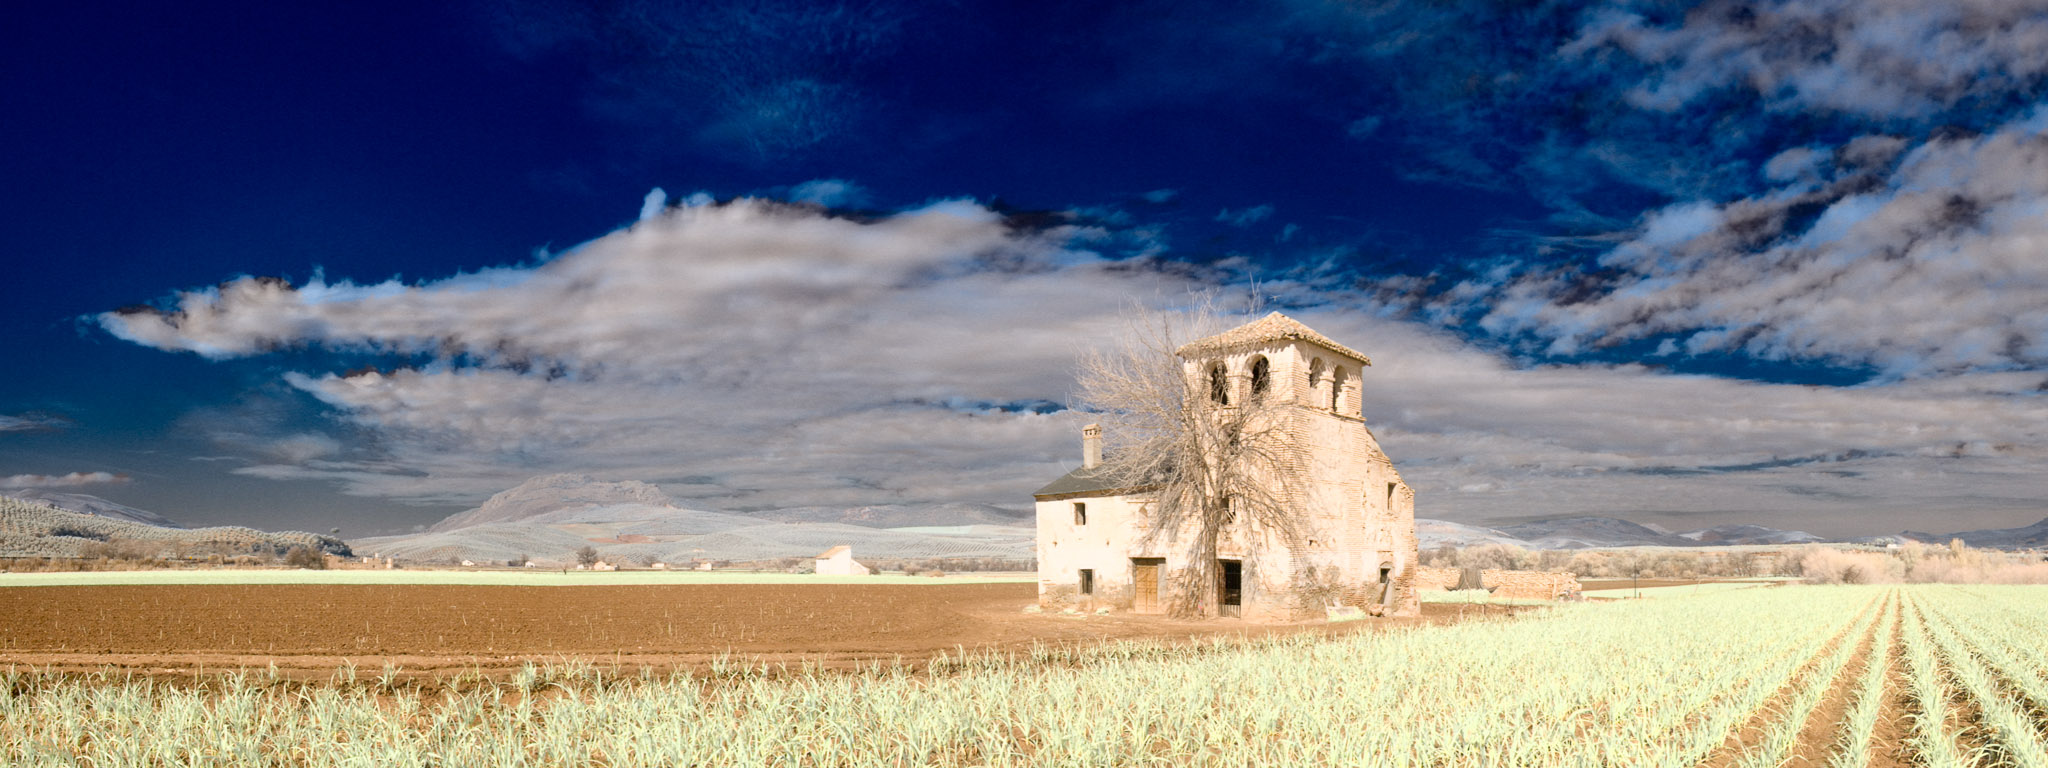 Barn near Seville, Spain